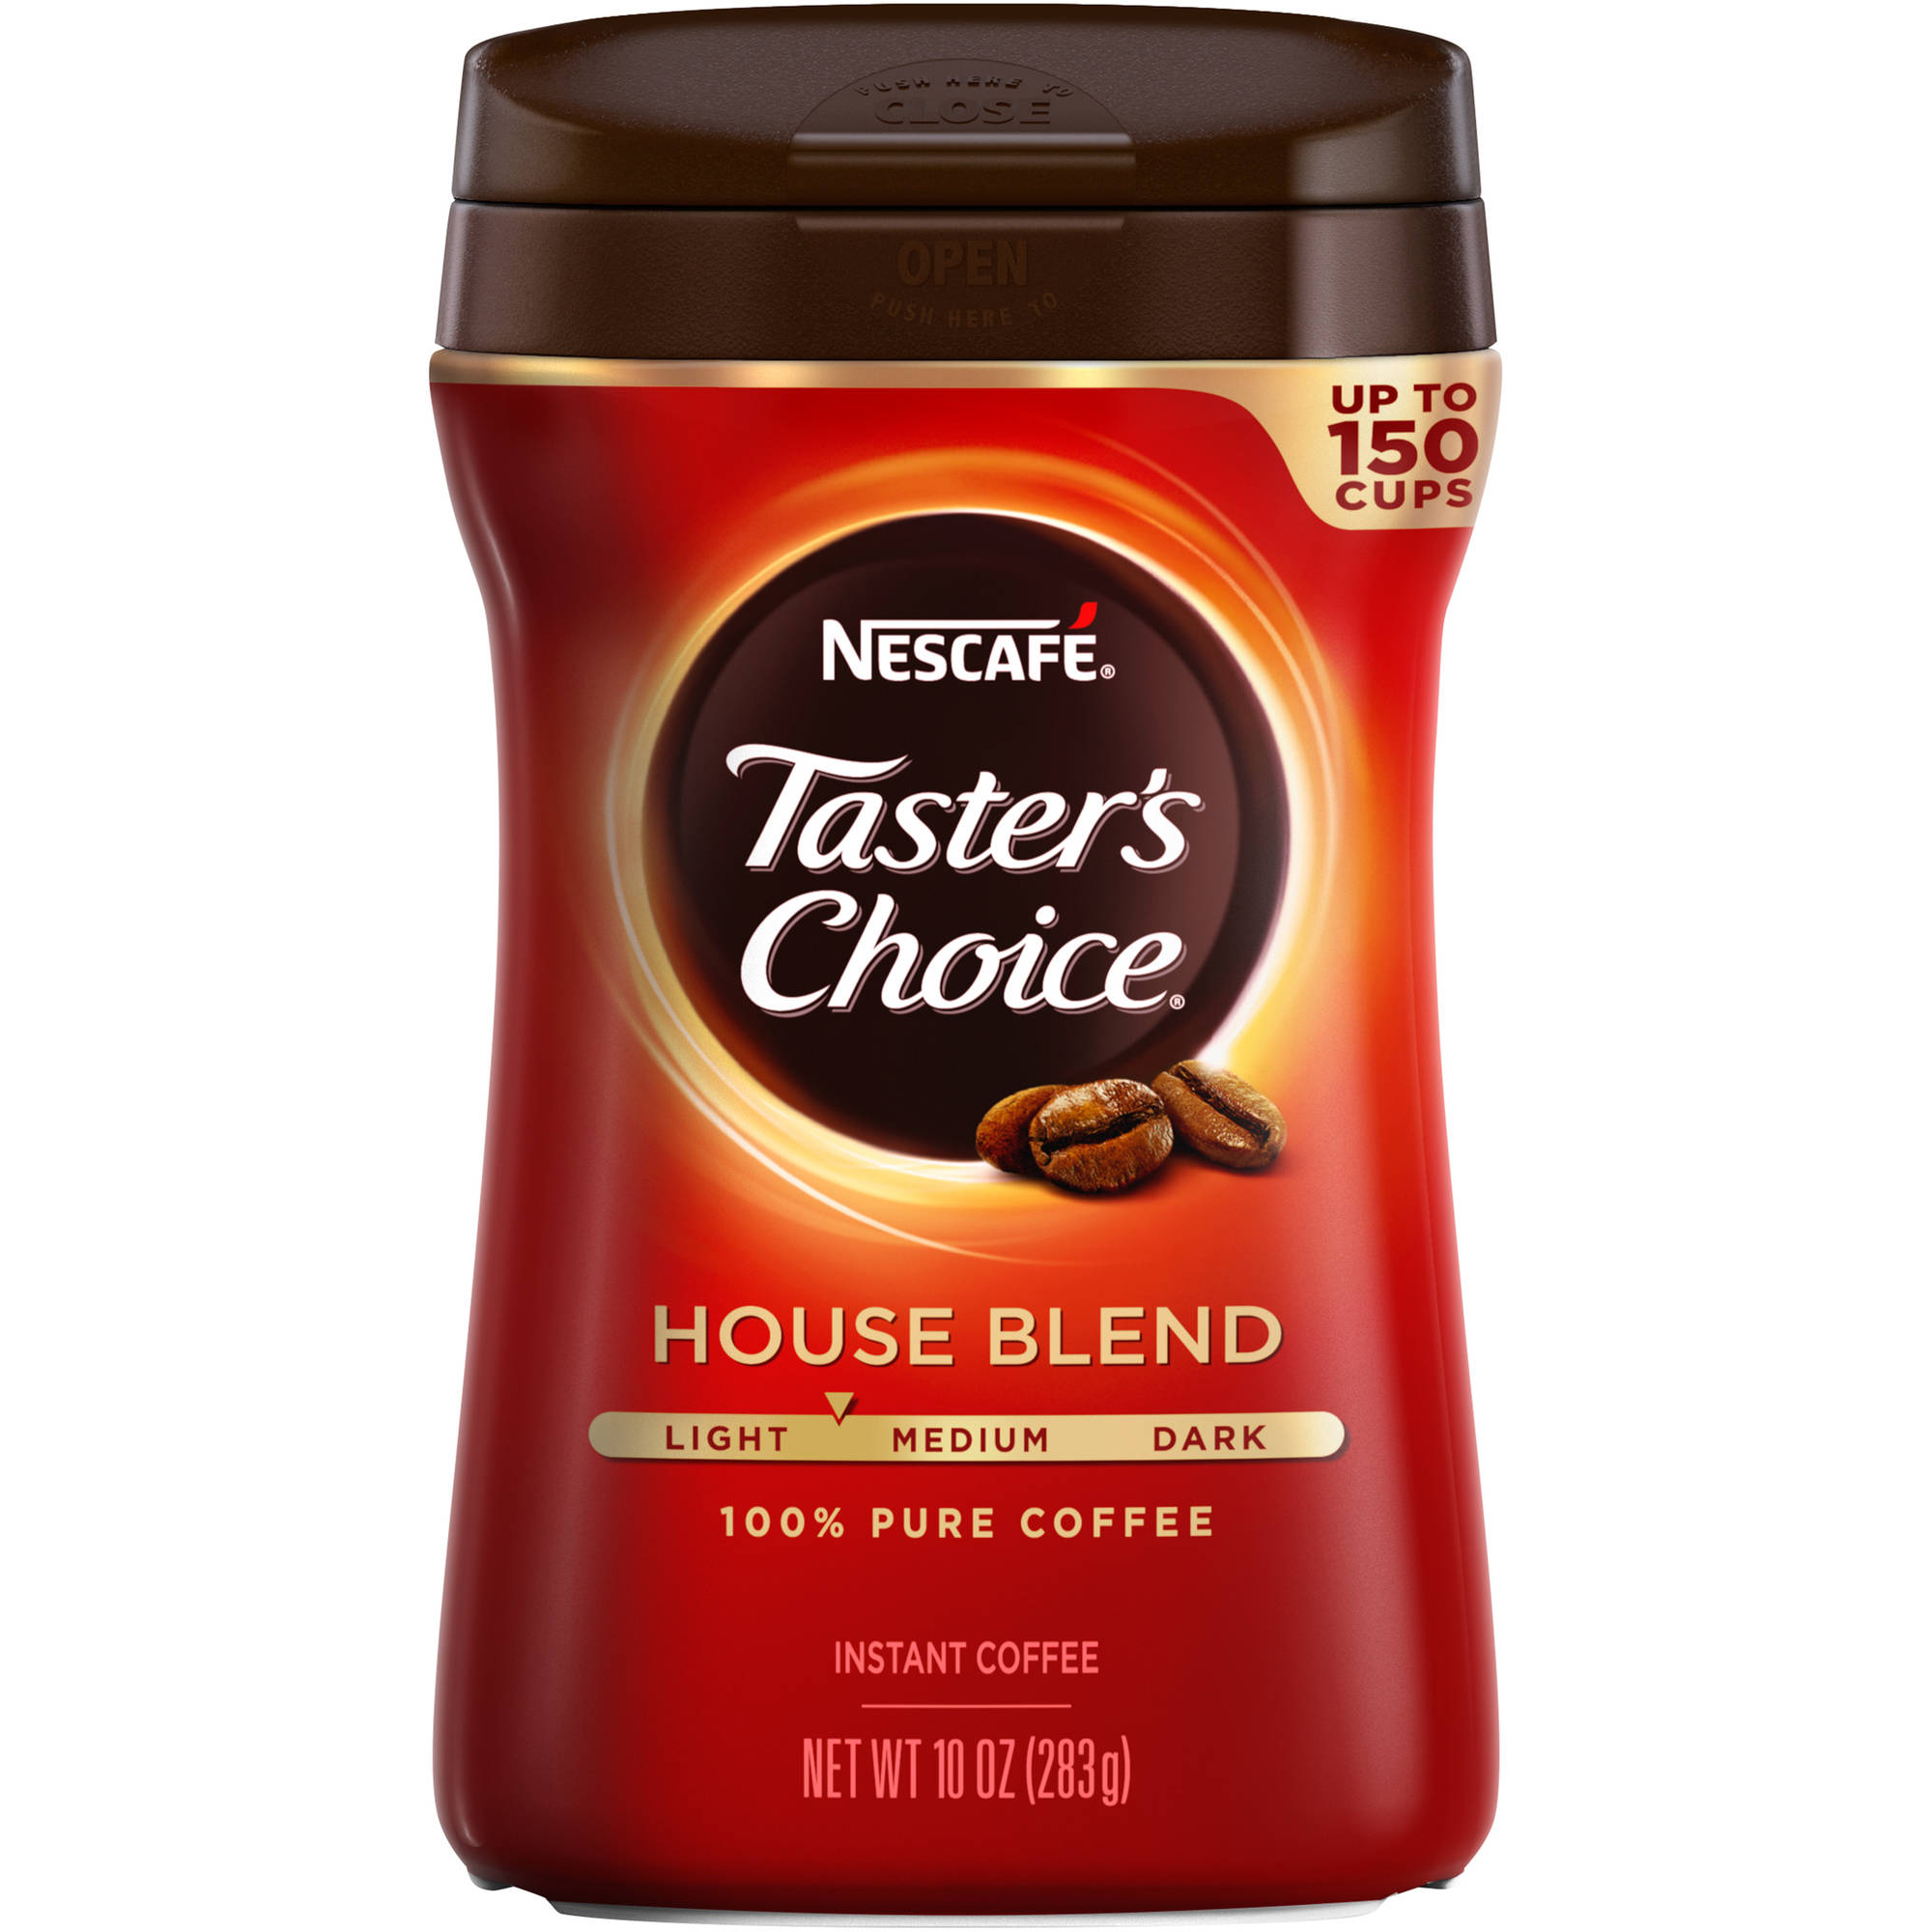 Nescafe Taster's Choice House Blend Instant Coffee, 10 oz